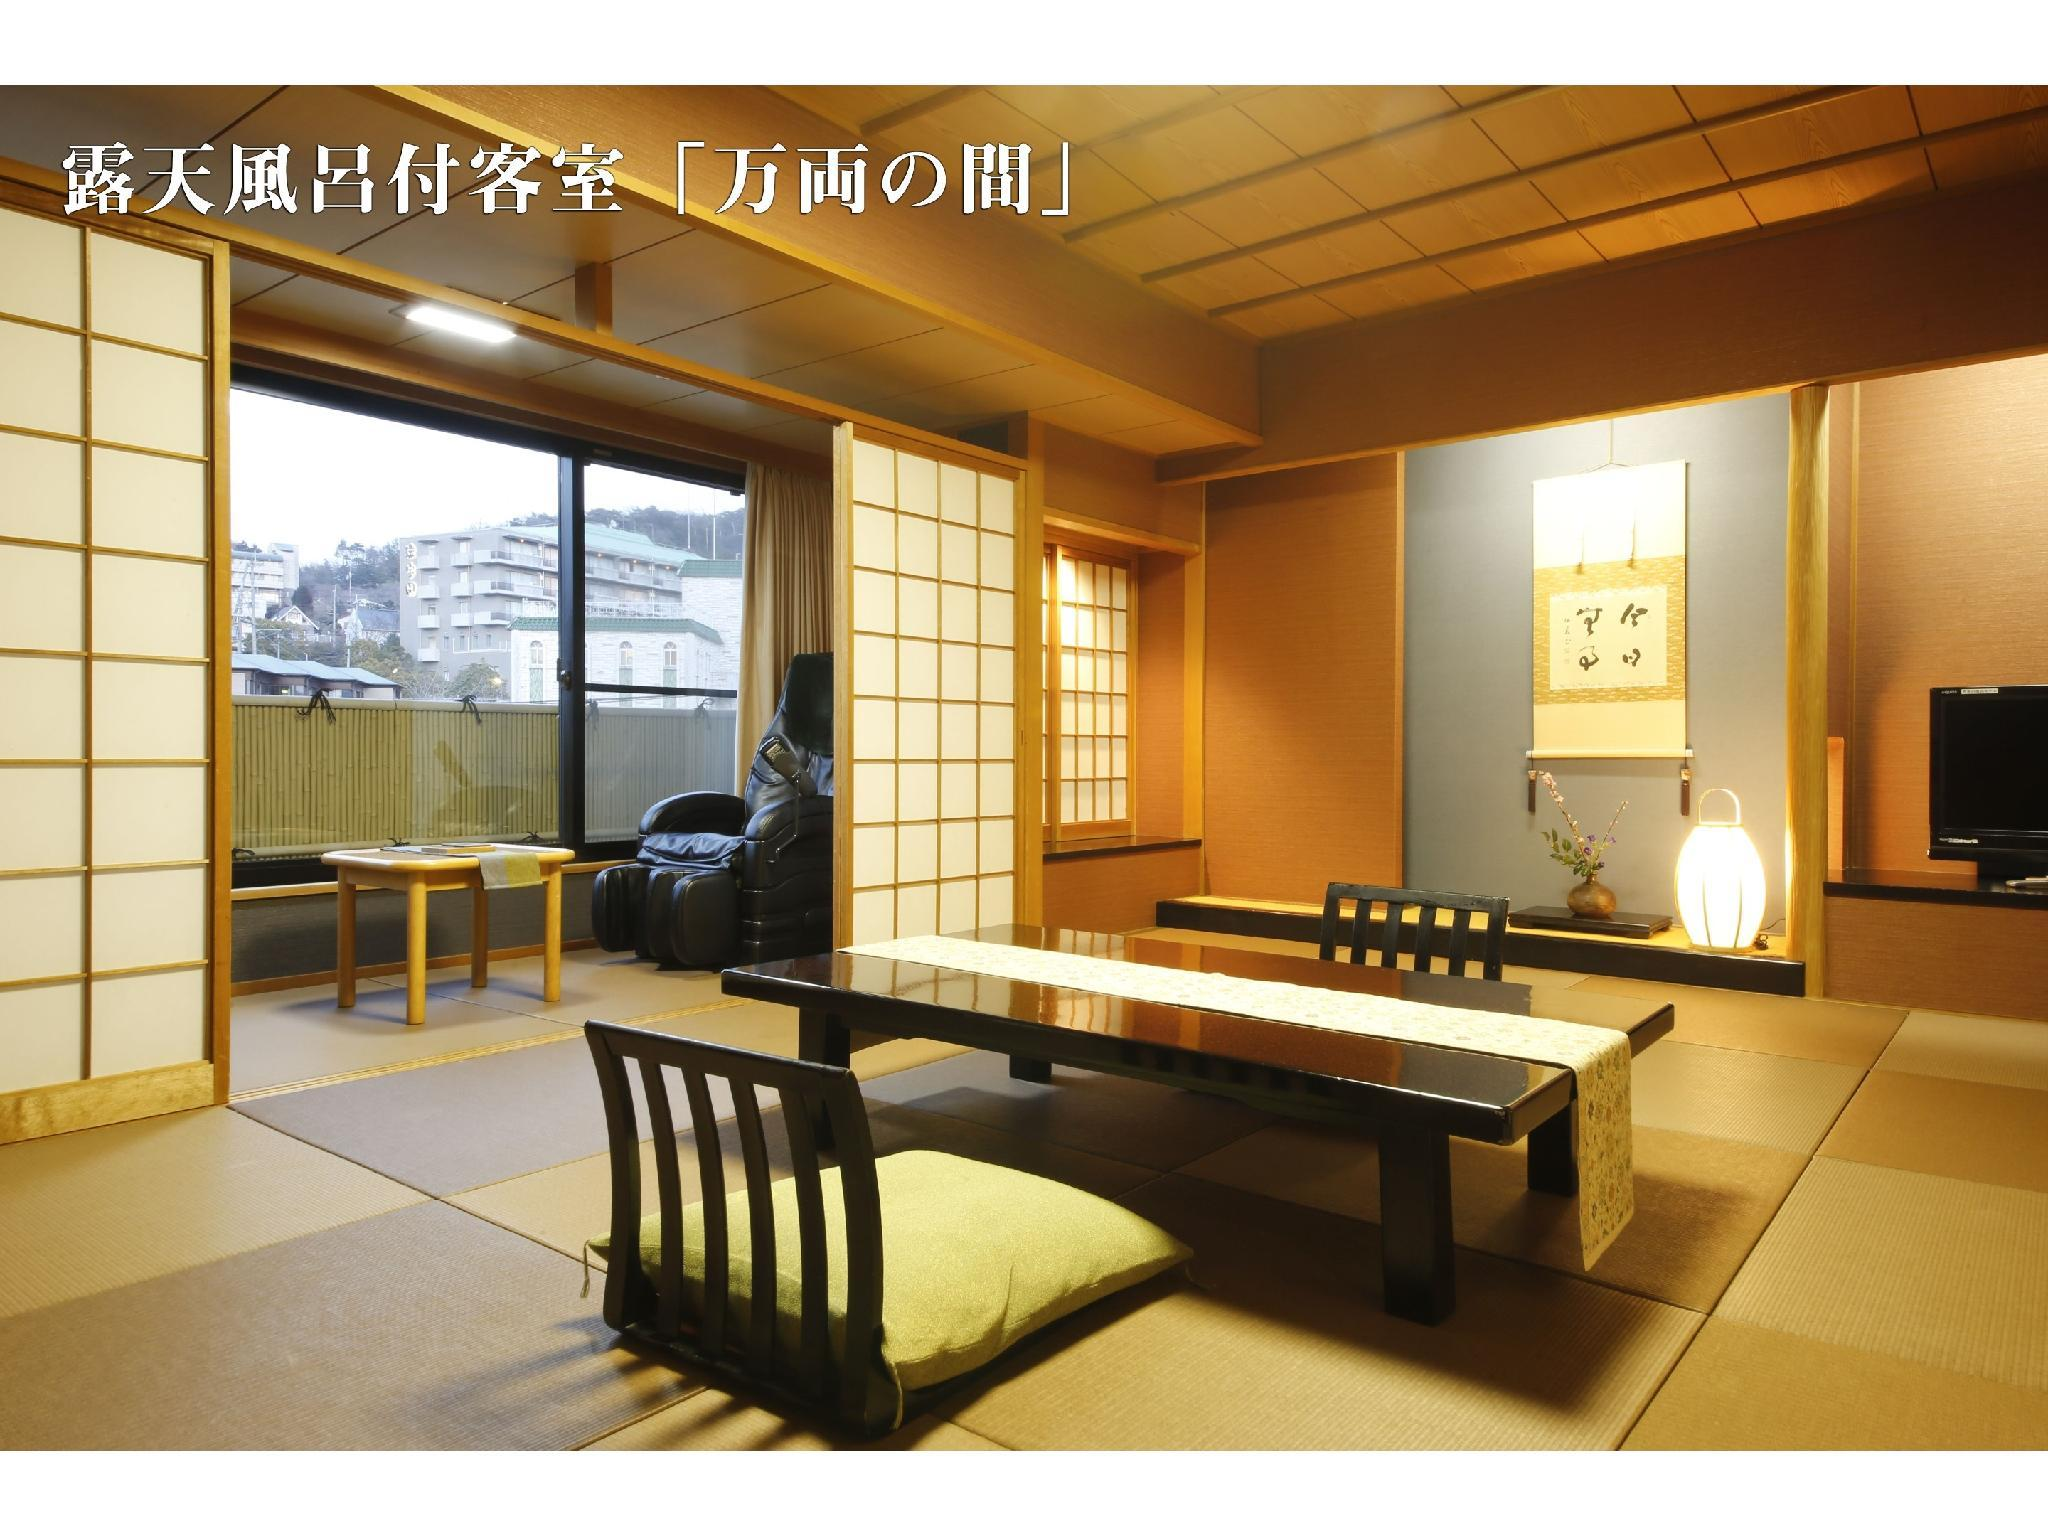 和式房12帖榻榻米+溫泉露天風呂 (Japanese-style Room with Open-air Hot Spring Bath (12 tatami))